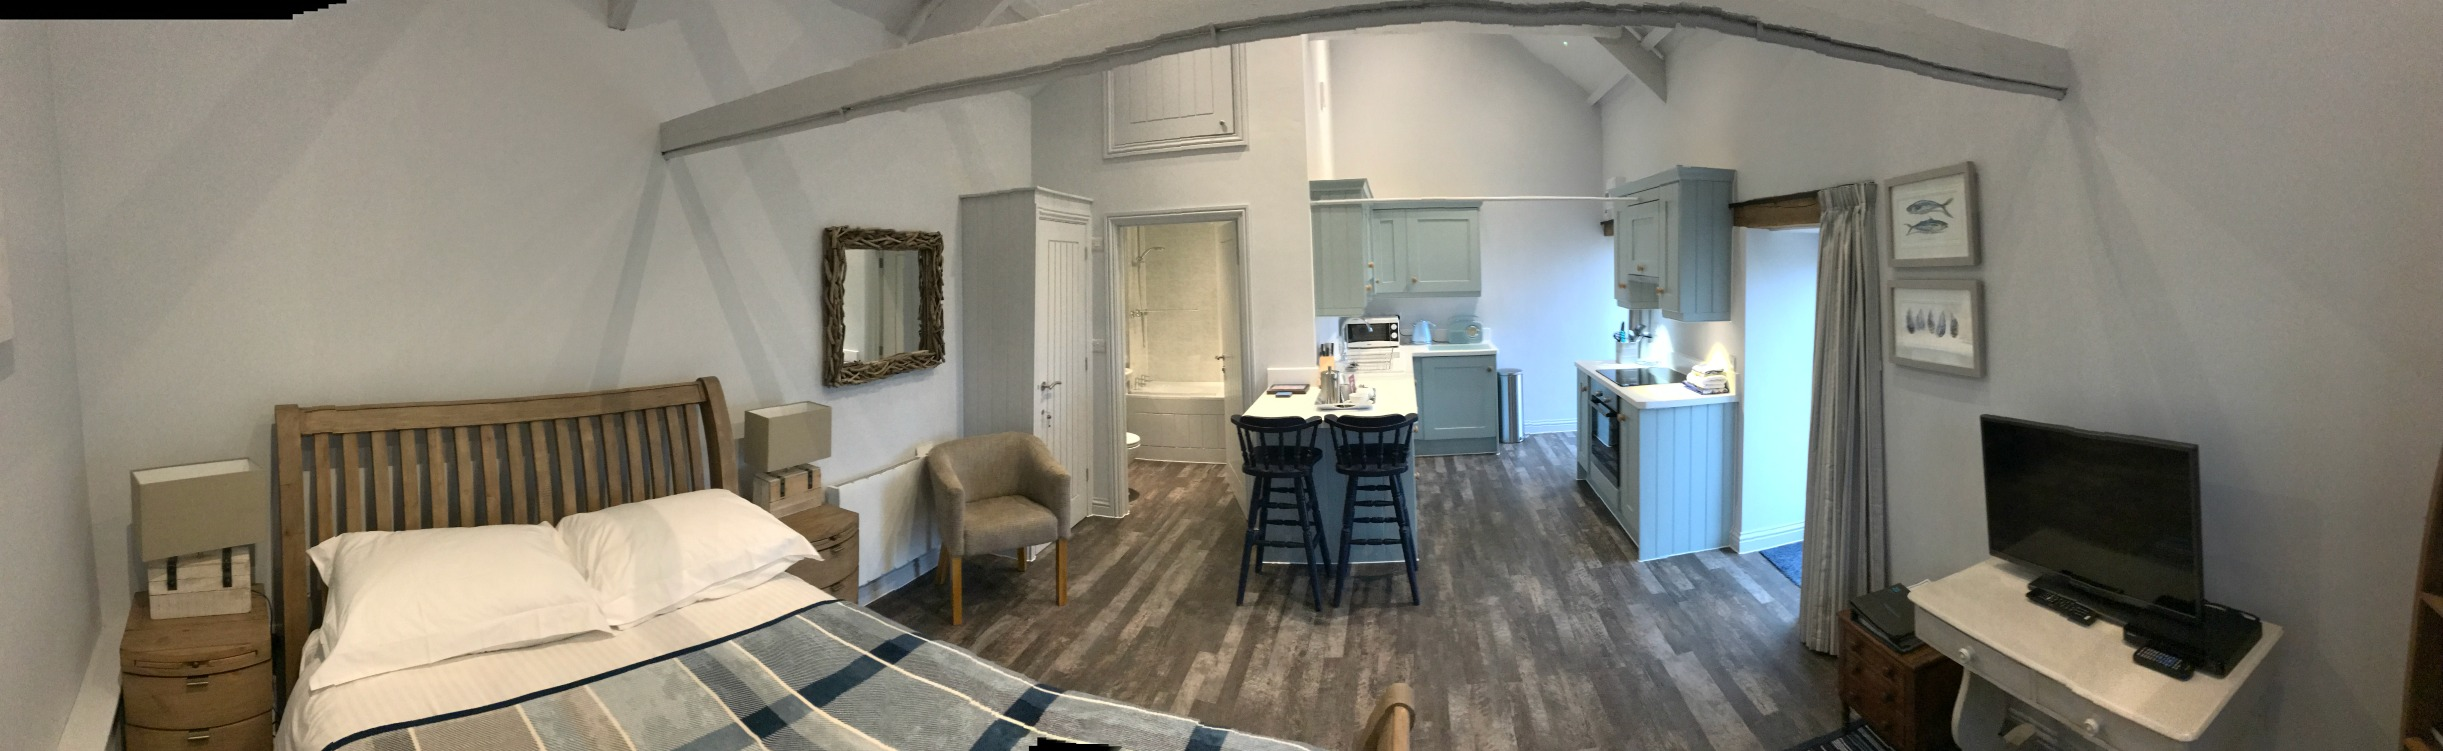 Woofenden barn conversion interior wide